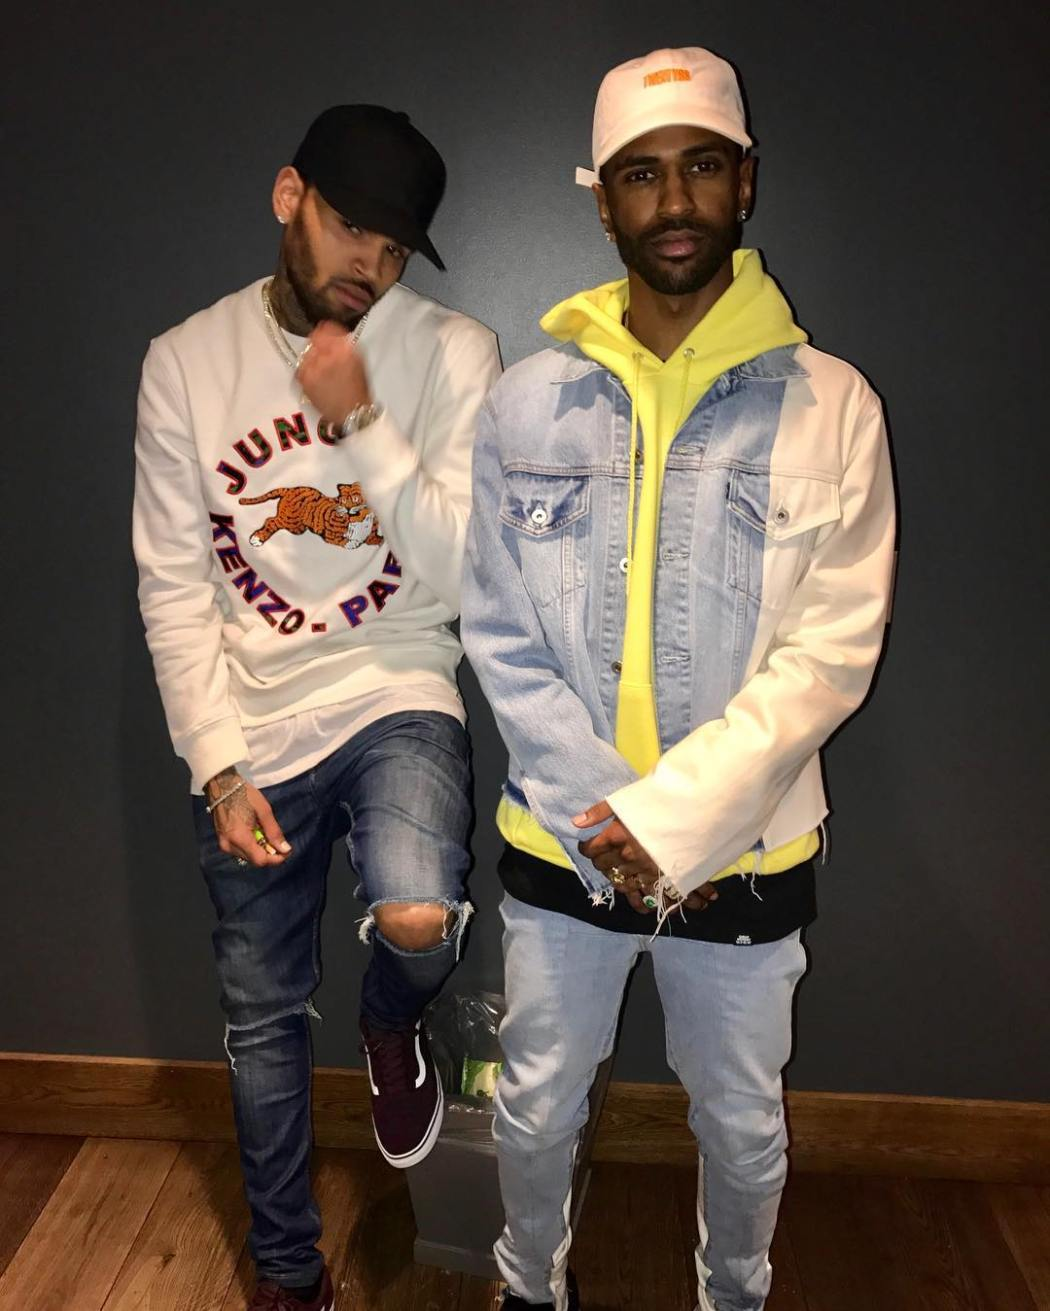 big-sean-off-white-levis-jacket-chris-brown-kenzo-hm-shirt-vans-sneakers